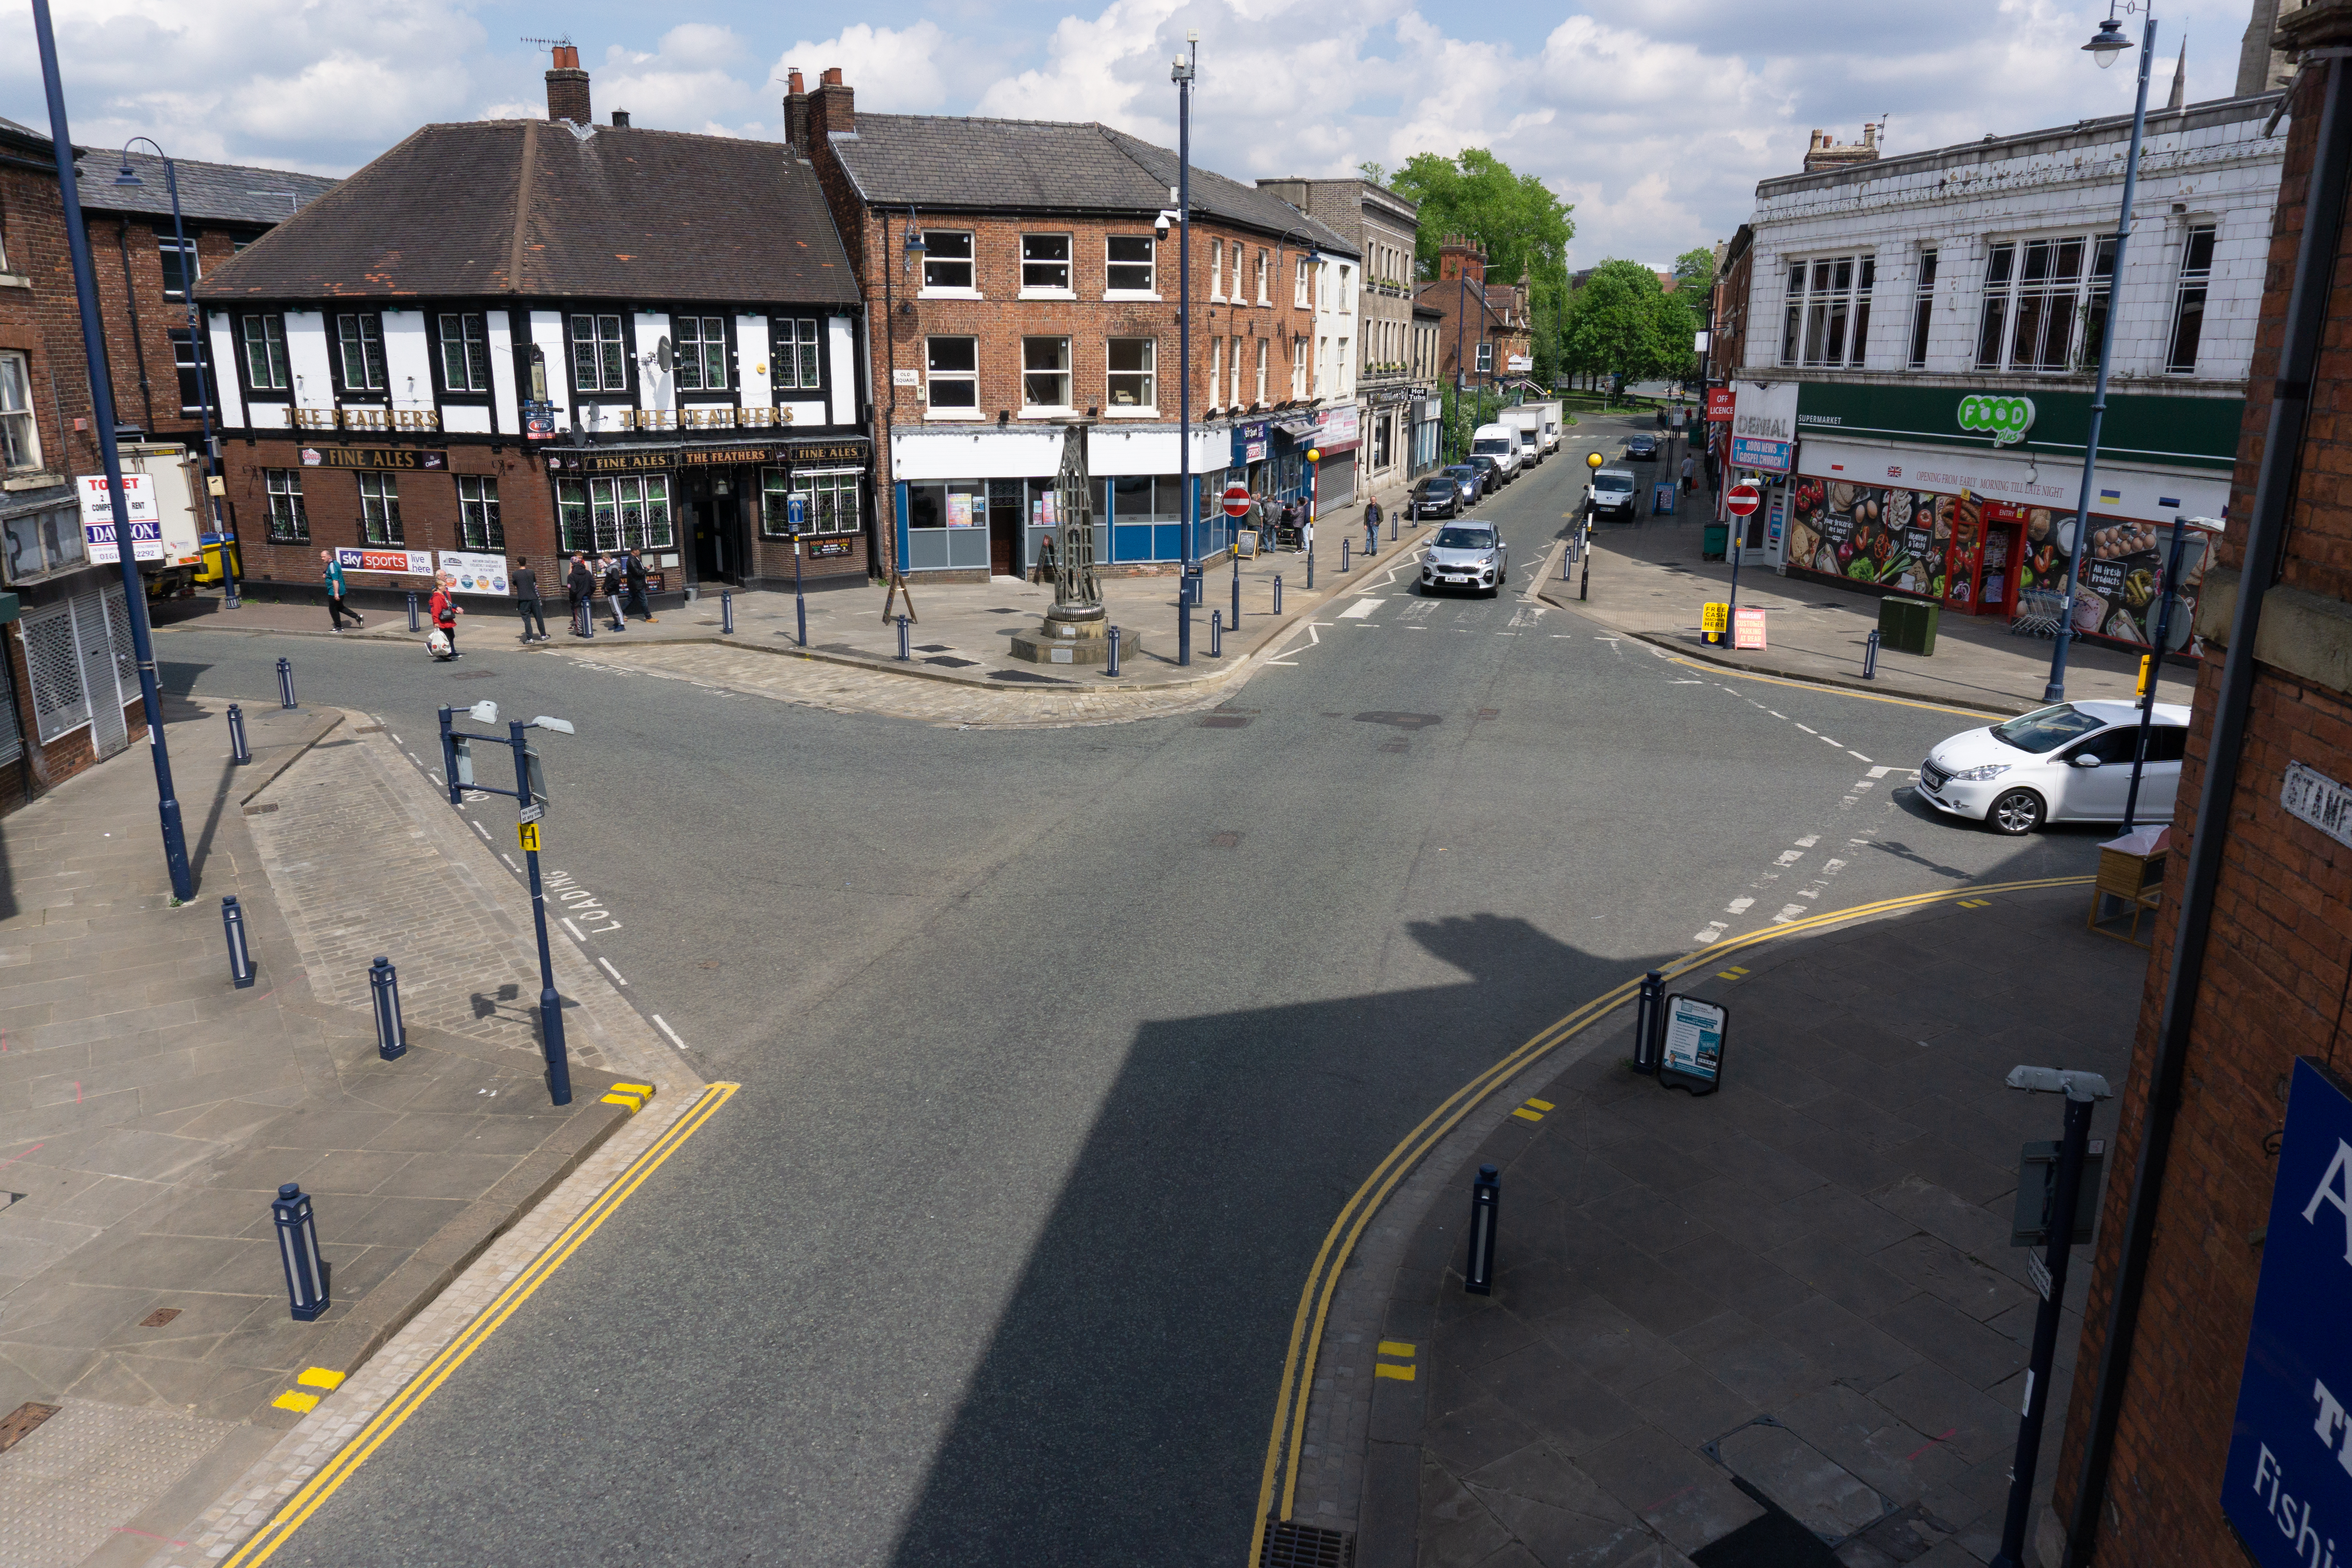 An image of the Stamford Street area in Ashton-under-Lyne